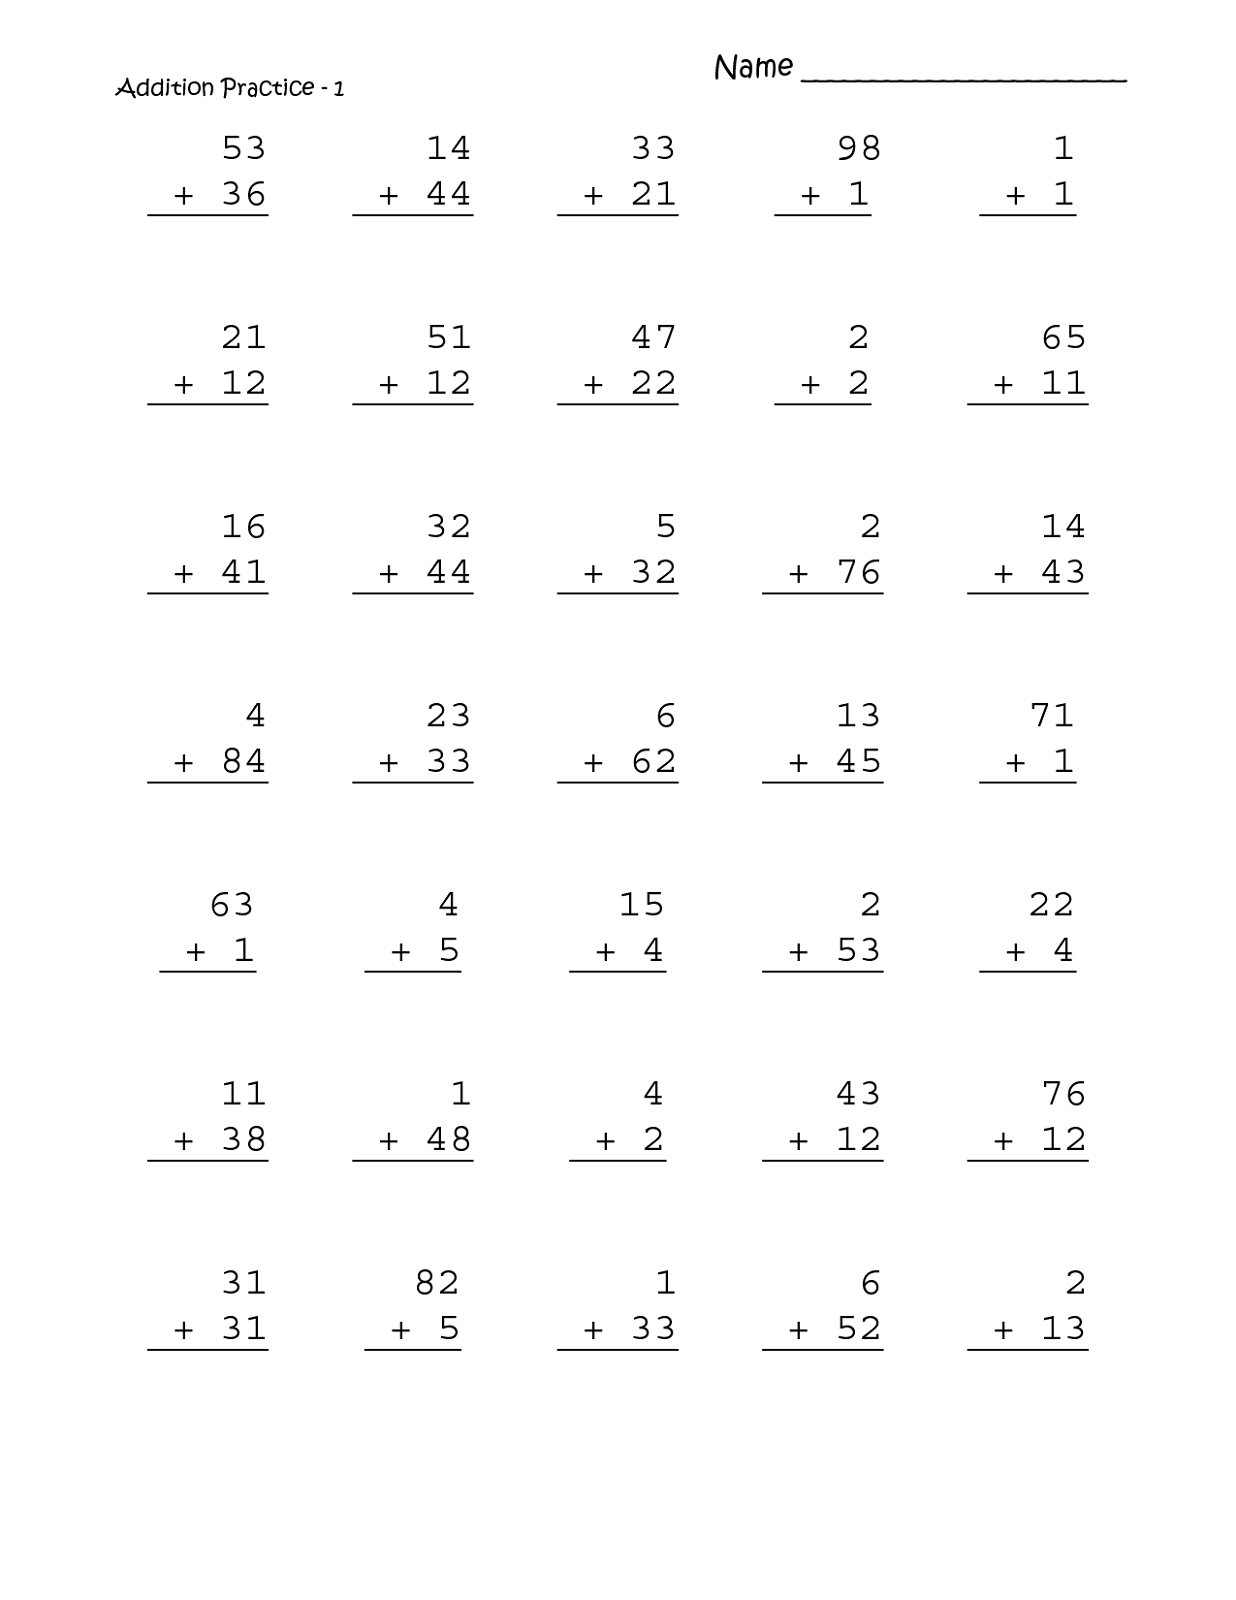 Addition Worksheet 1